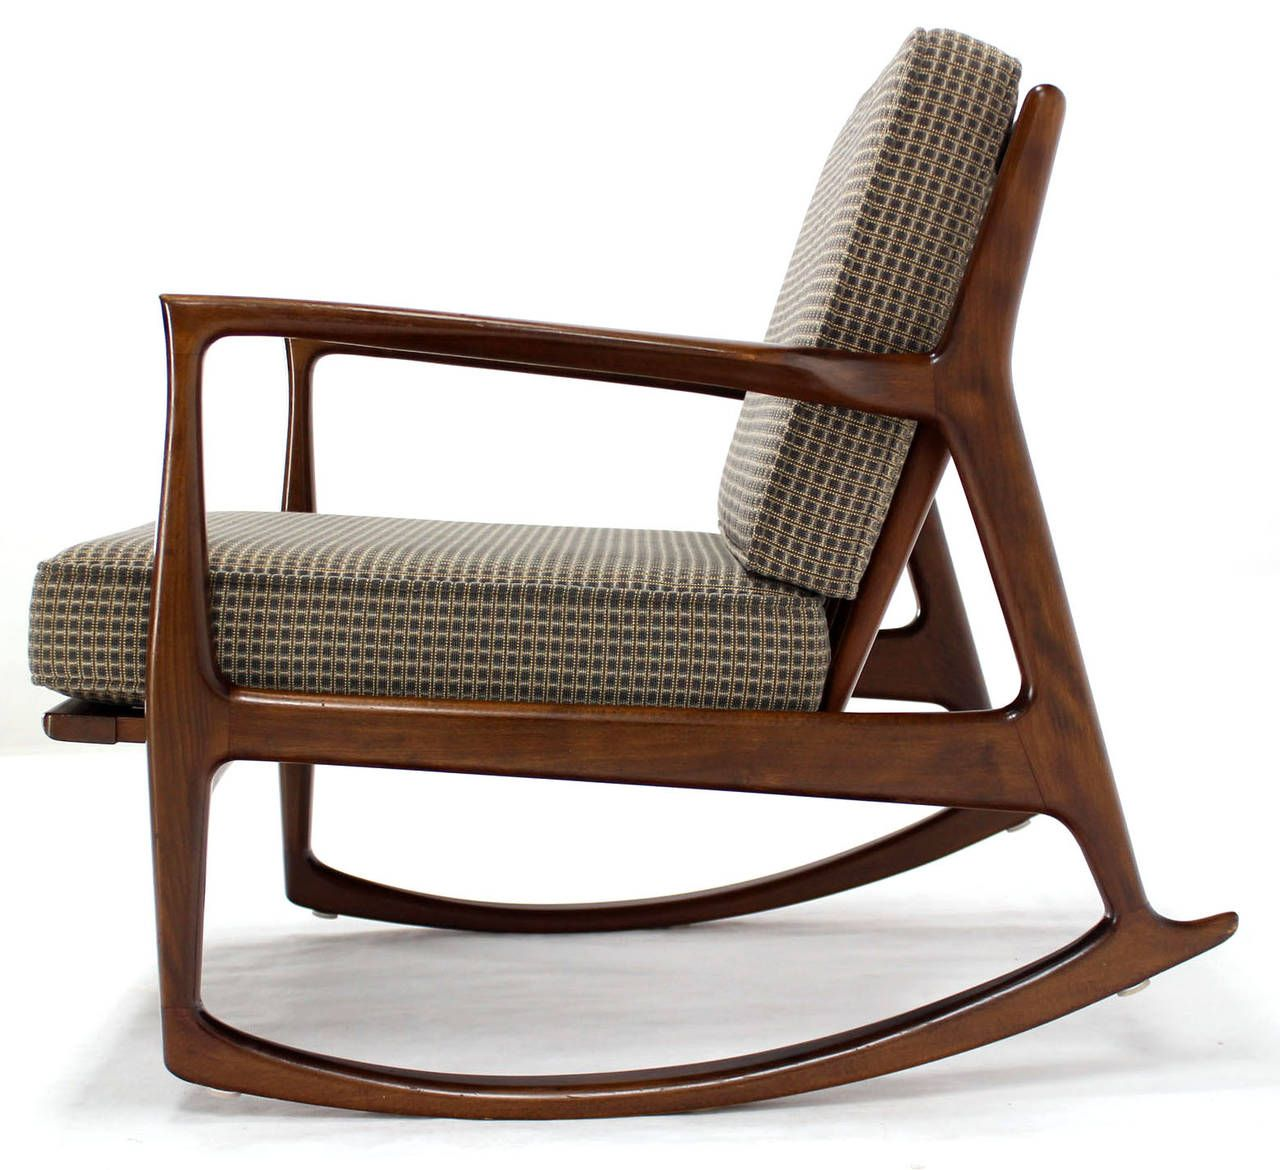 Cheap Modern Rocking Chair Small Folding Chairs Stools Selig Pesquisa Google Woodwork